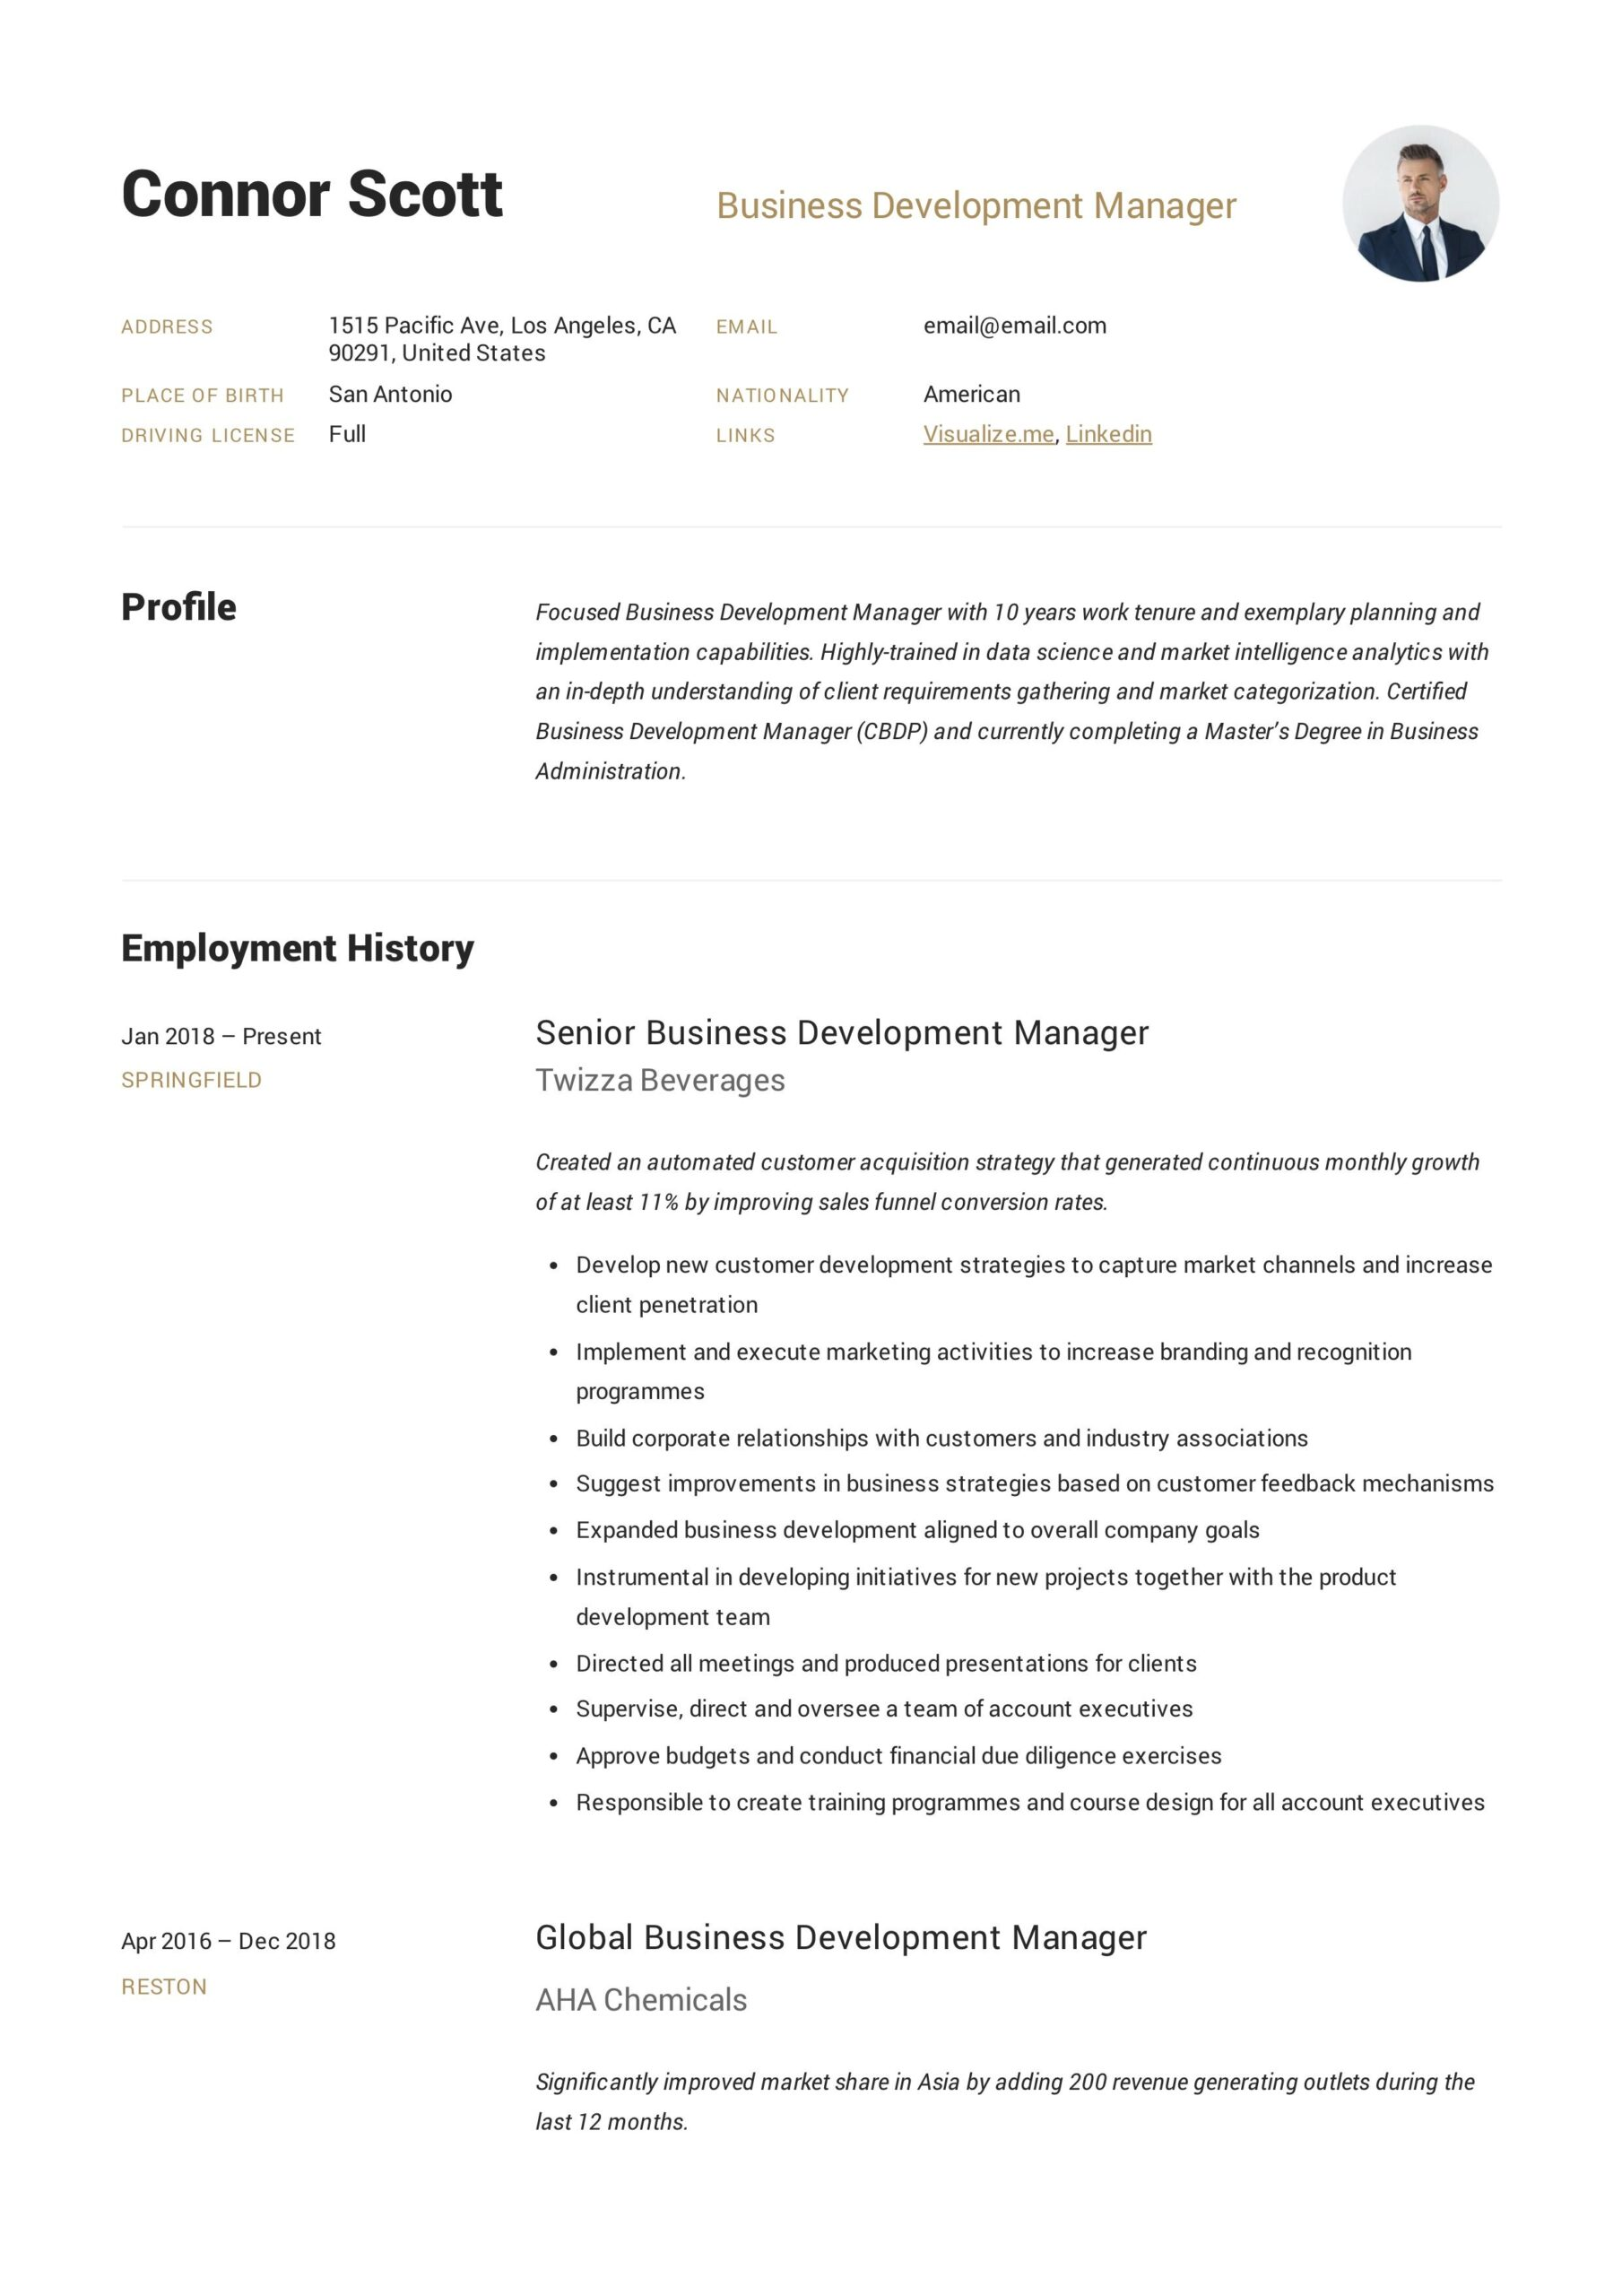 business development manager resume sample in guide senior accountant accounting legal Resume Business Development Manager Resume